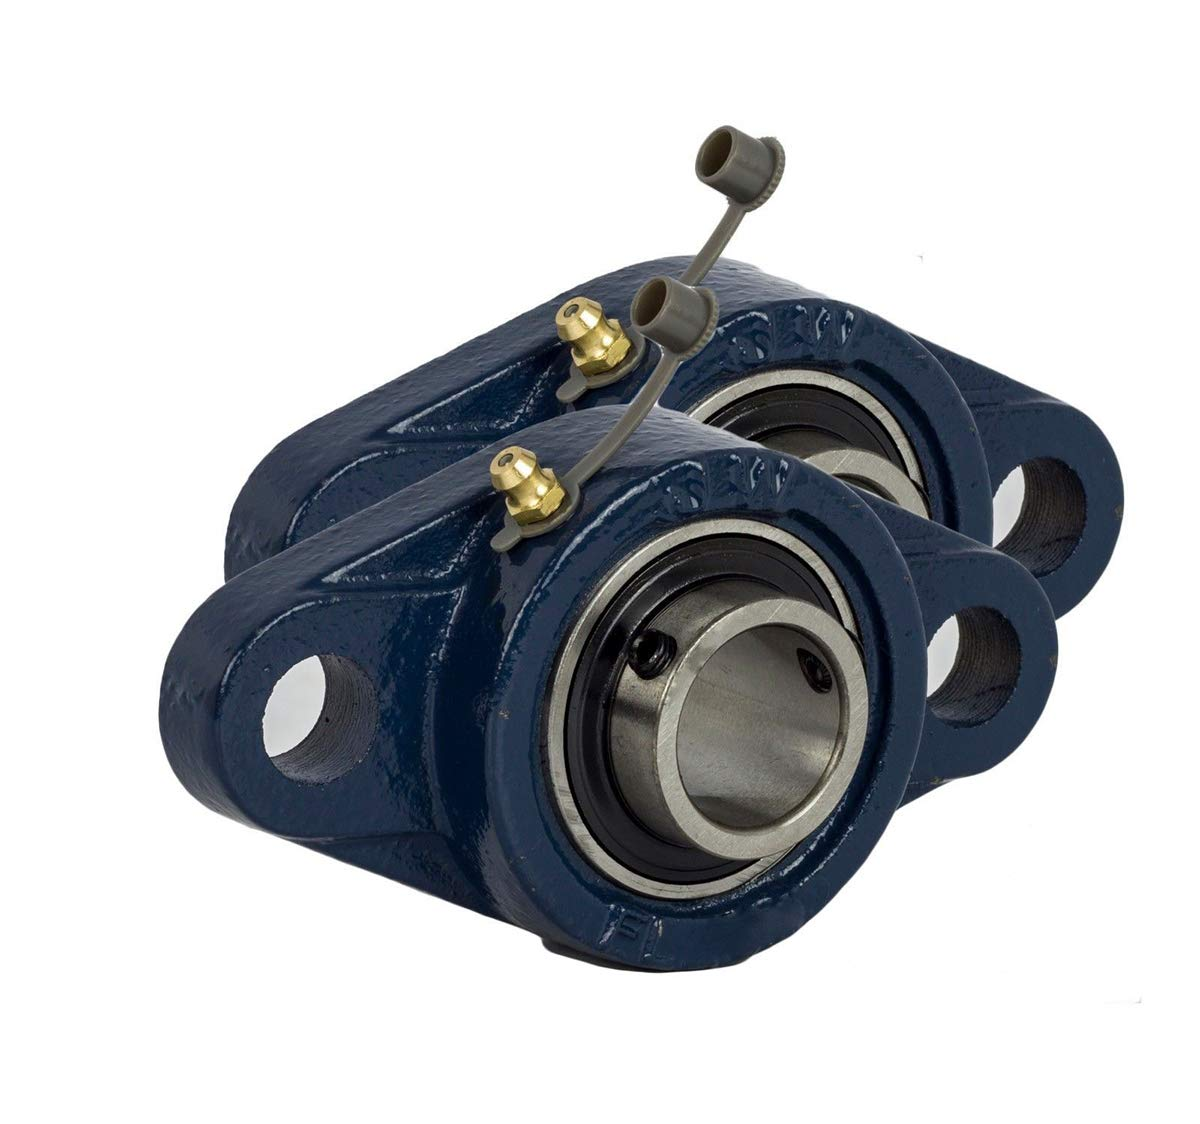 Jeremywell 2 Online limited product Piece- 1 inch Bolt Great interest Flange Bearing Block Pillow U